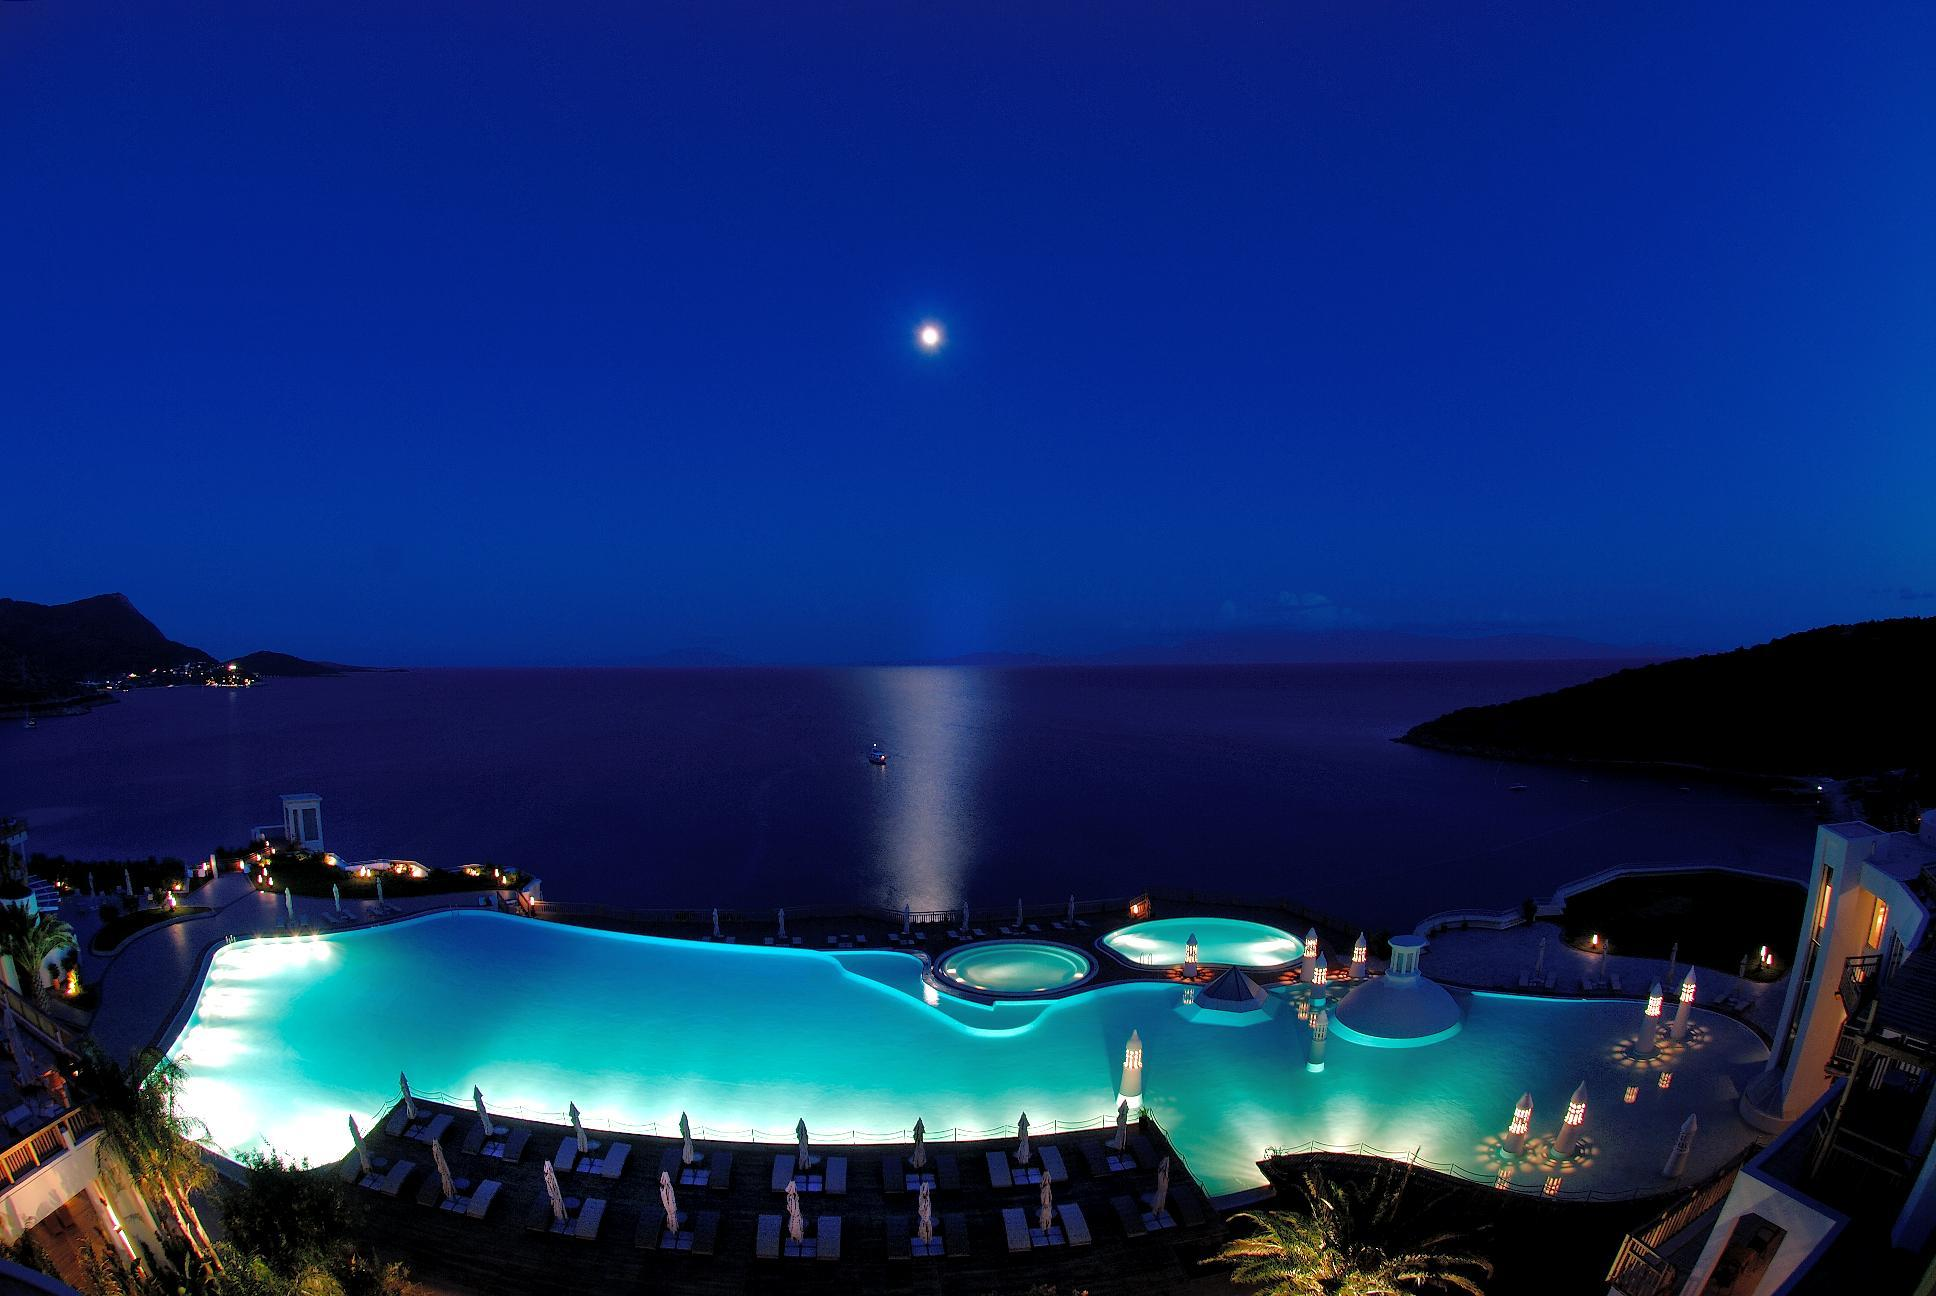 The view over the pool and to the sea beyond at night